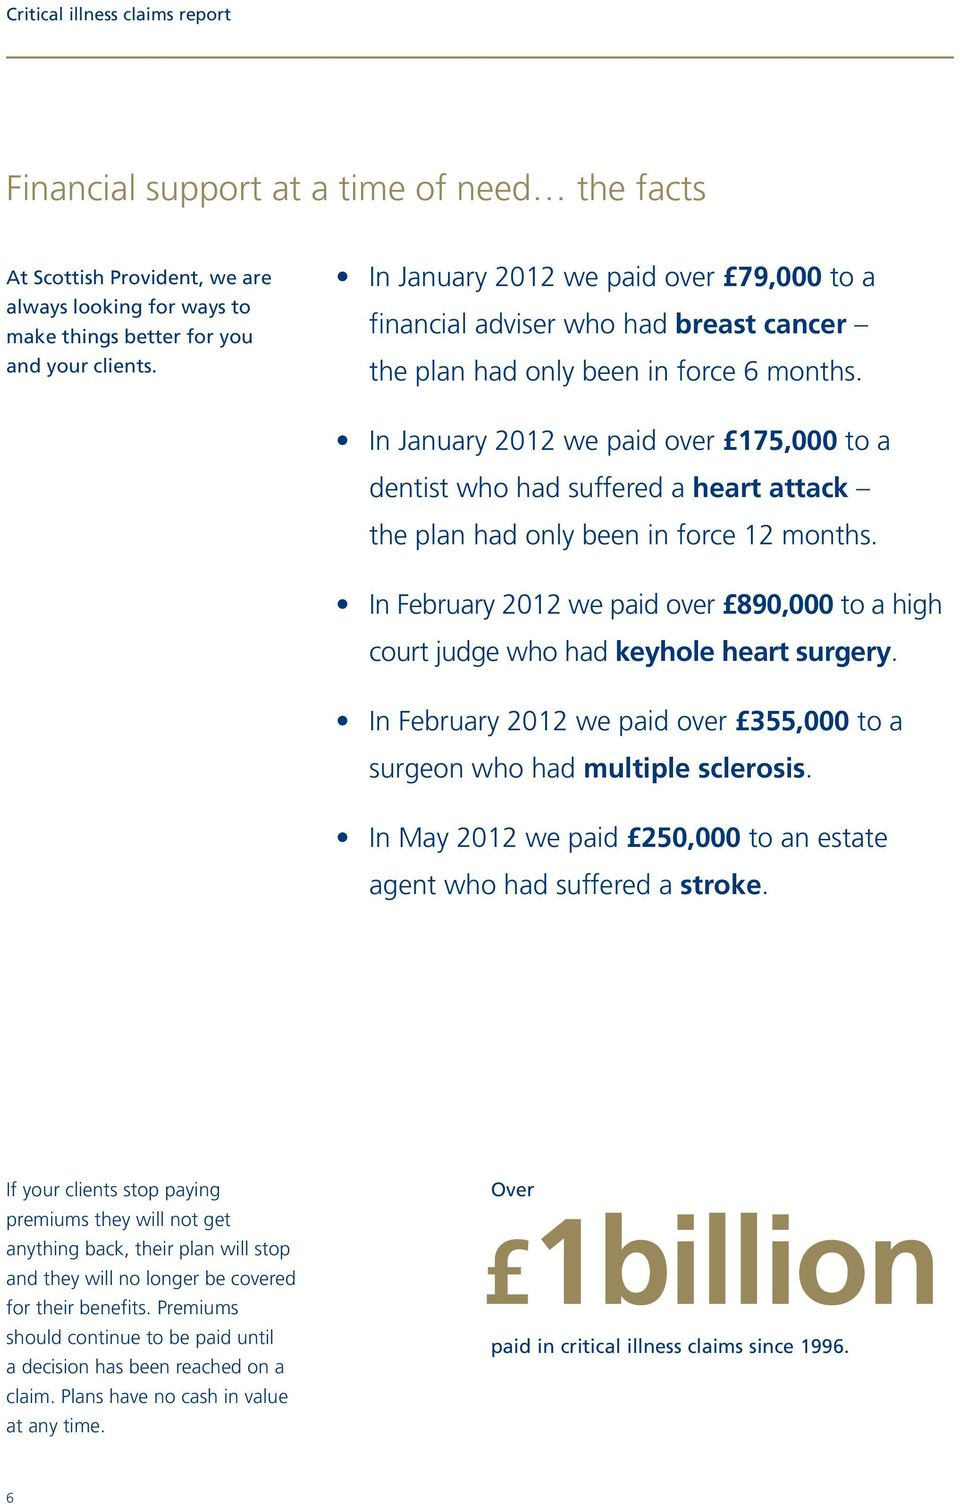 In January 2012 we over 175,000 to a dentist who had suffered a heart attack the plan had only been in force 12 months.